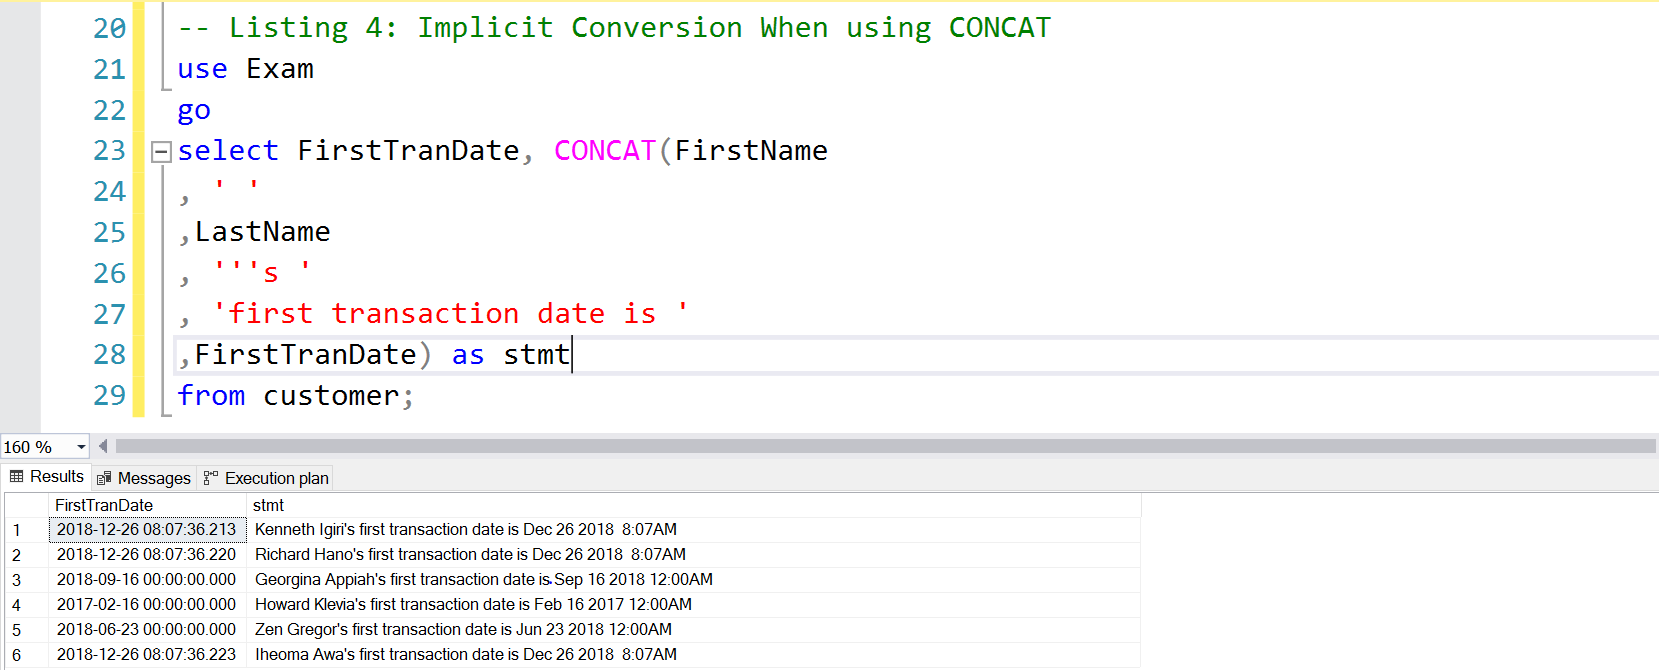 Implicit Conversion of DATETIME